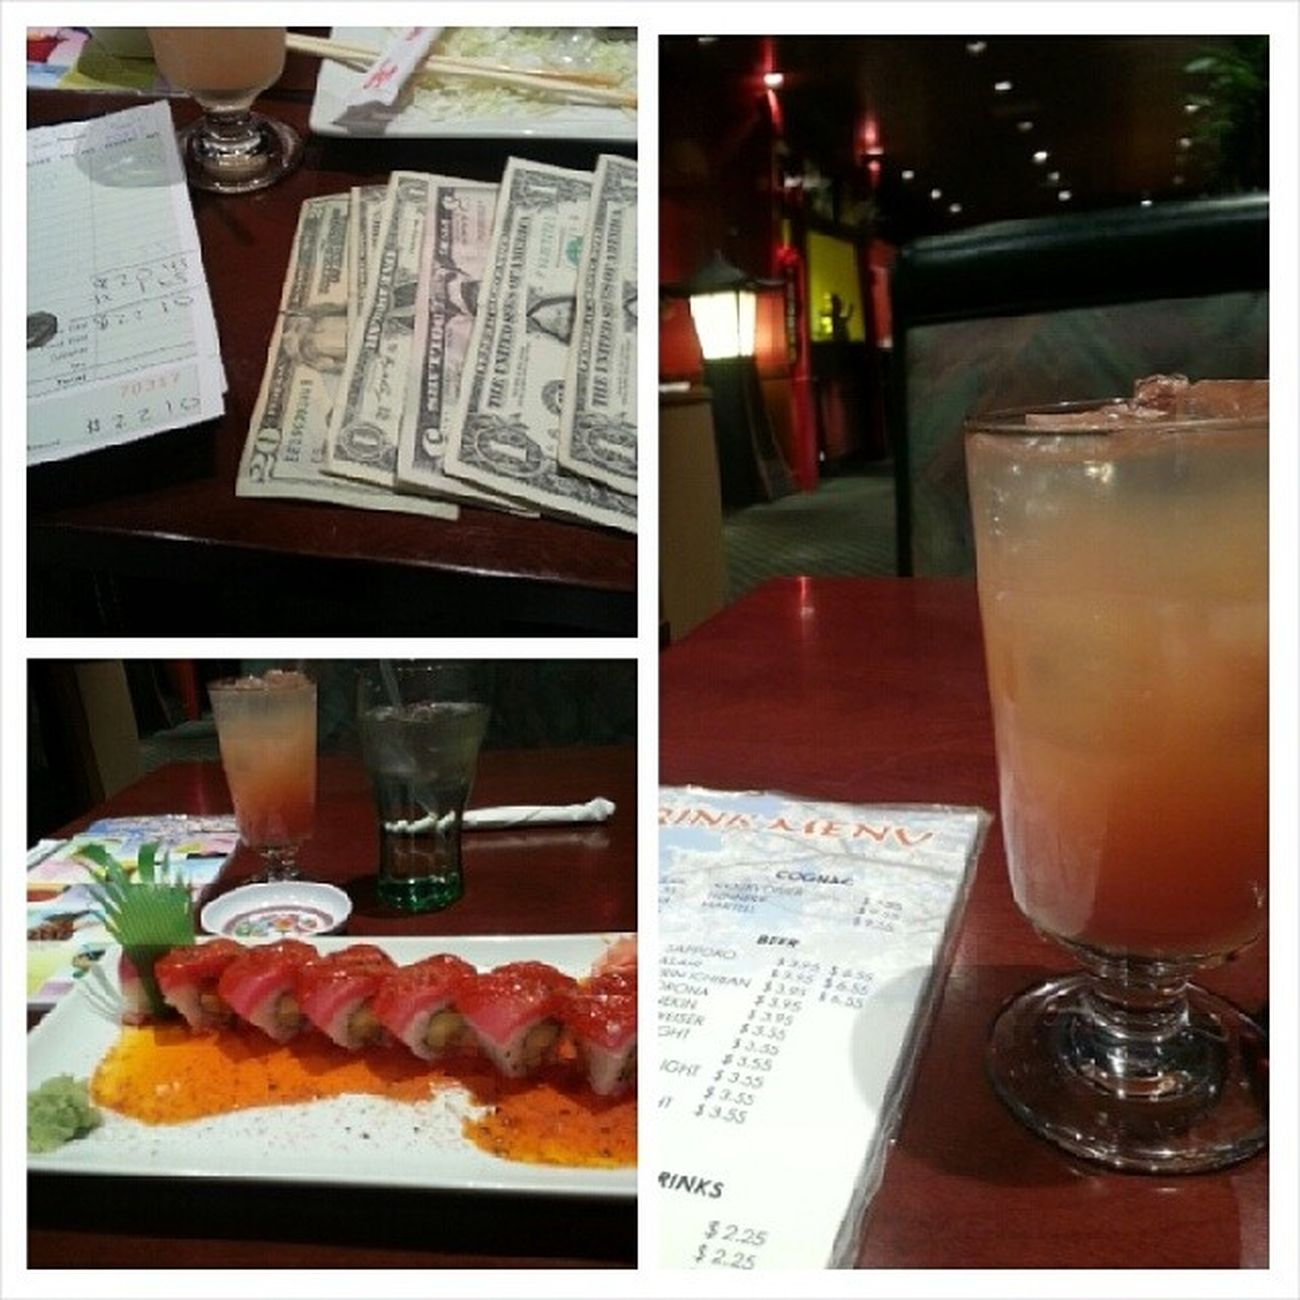 Sushi goes well with Sexonthebeach Goodservice Illtipyagood no prob Moneyaintaissue ;) boss